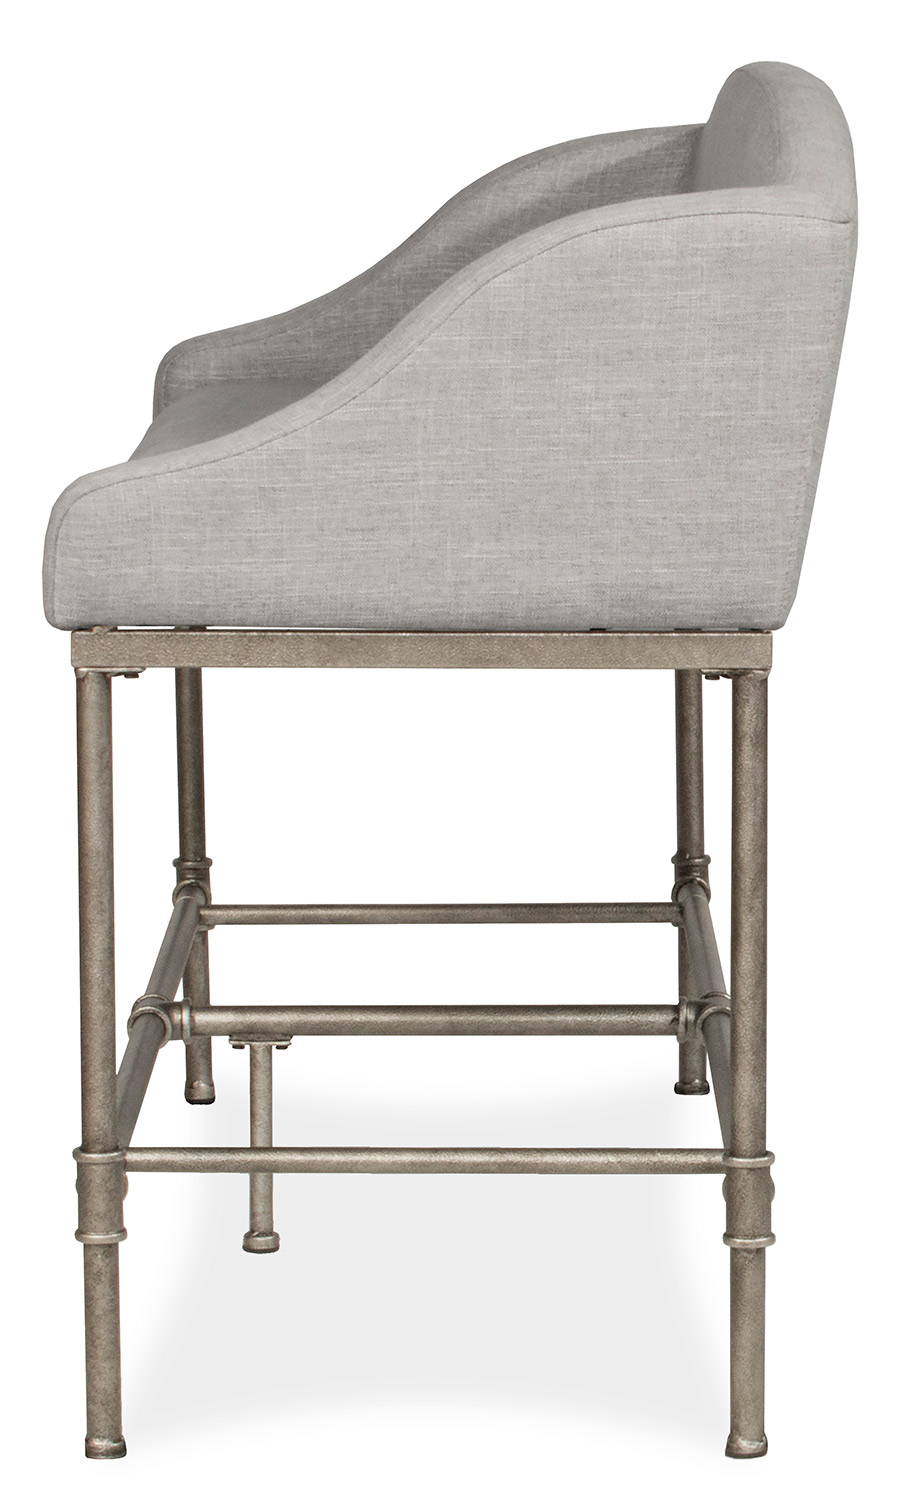 Hillsdale Dillon Counter Height Bench - Pewter